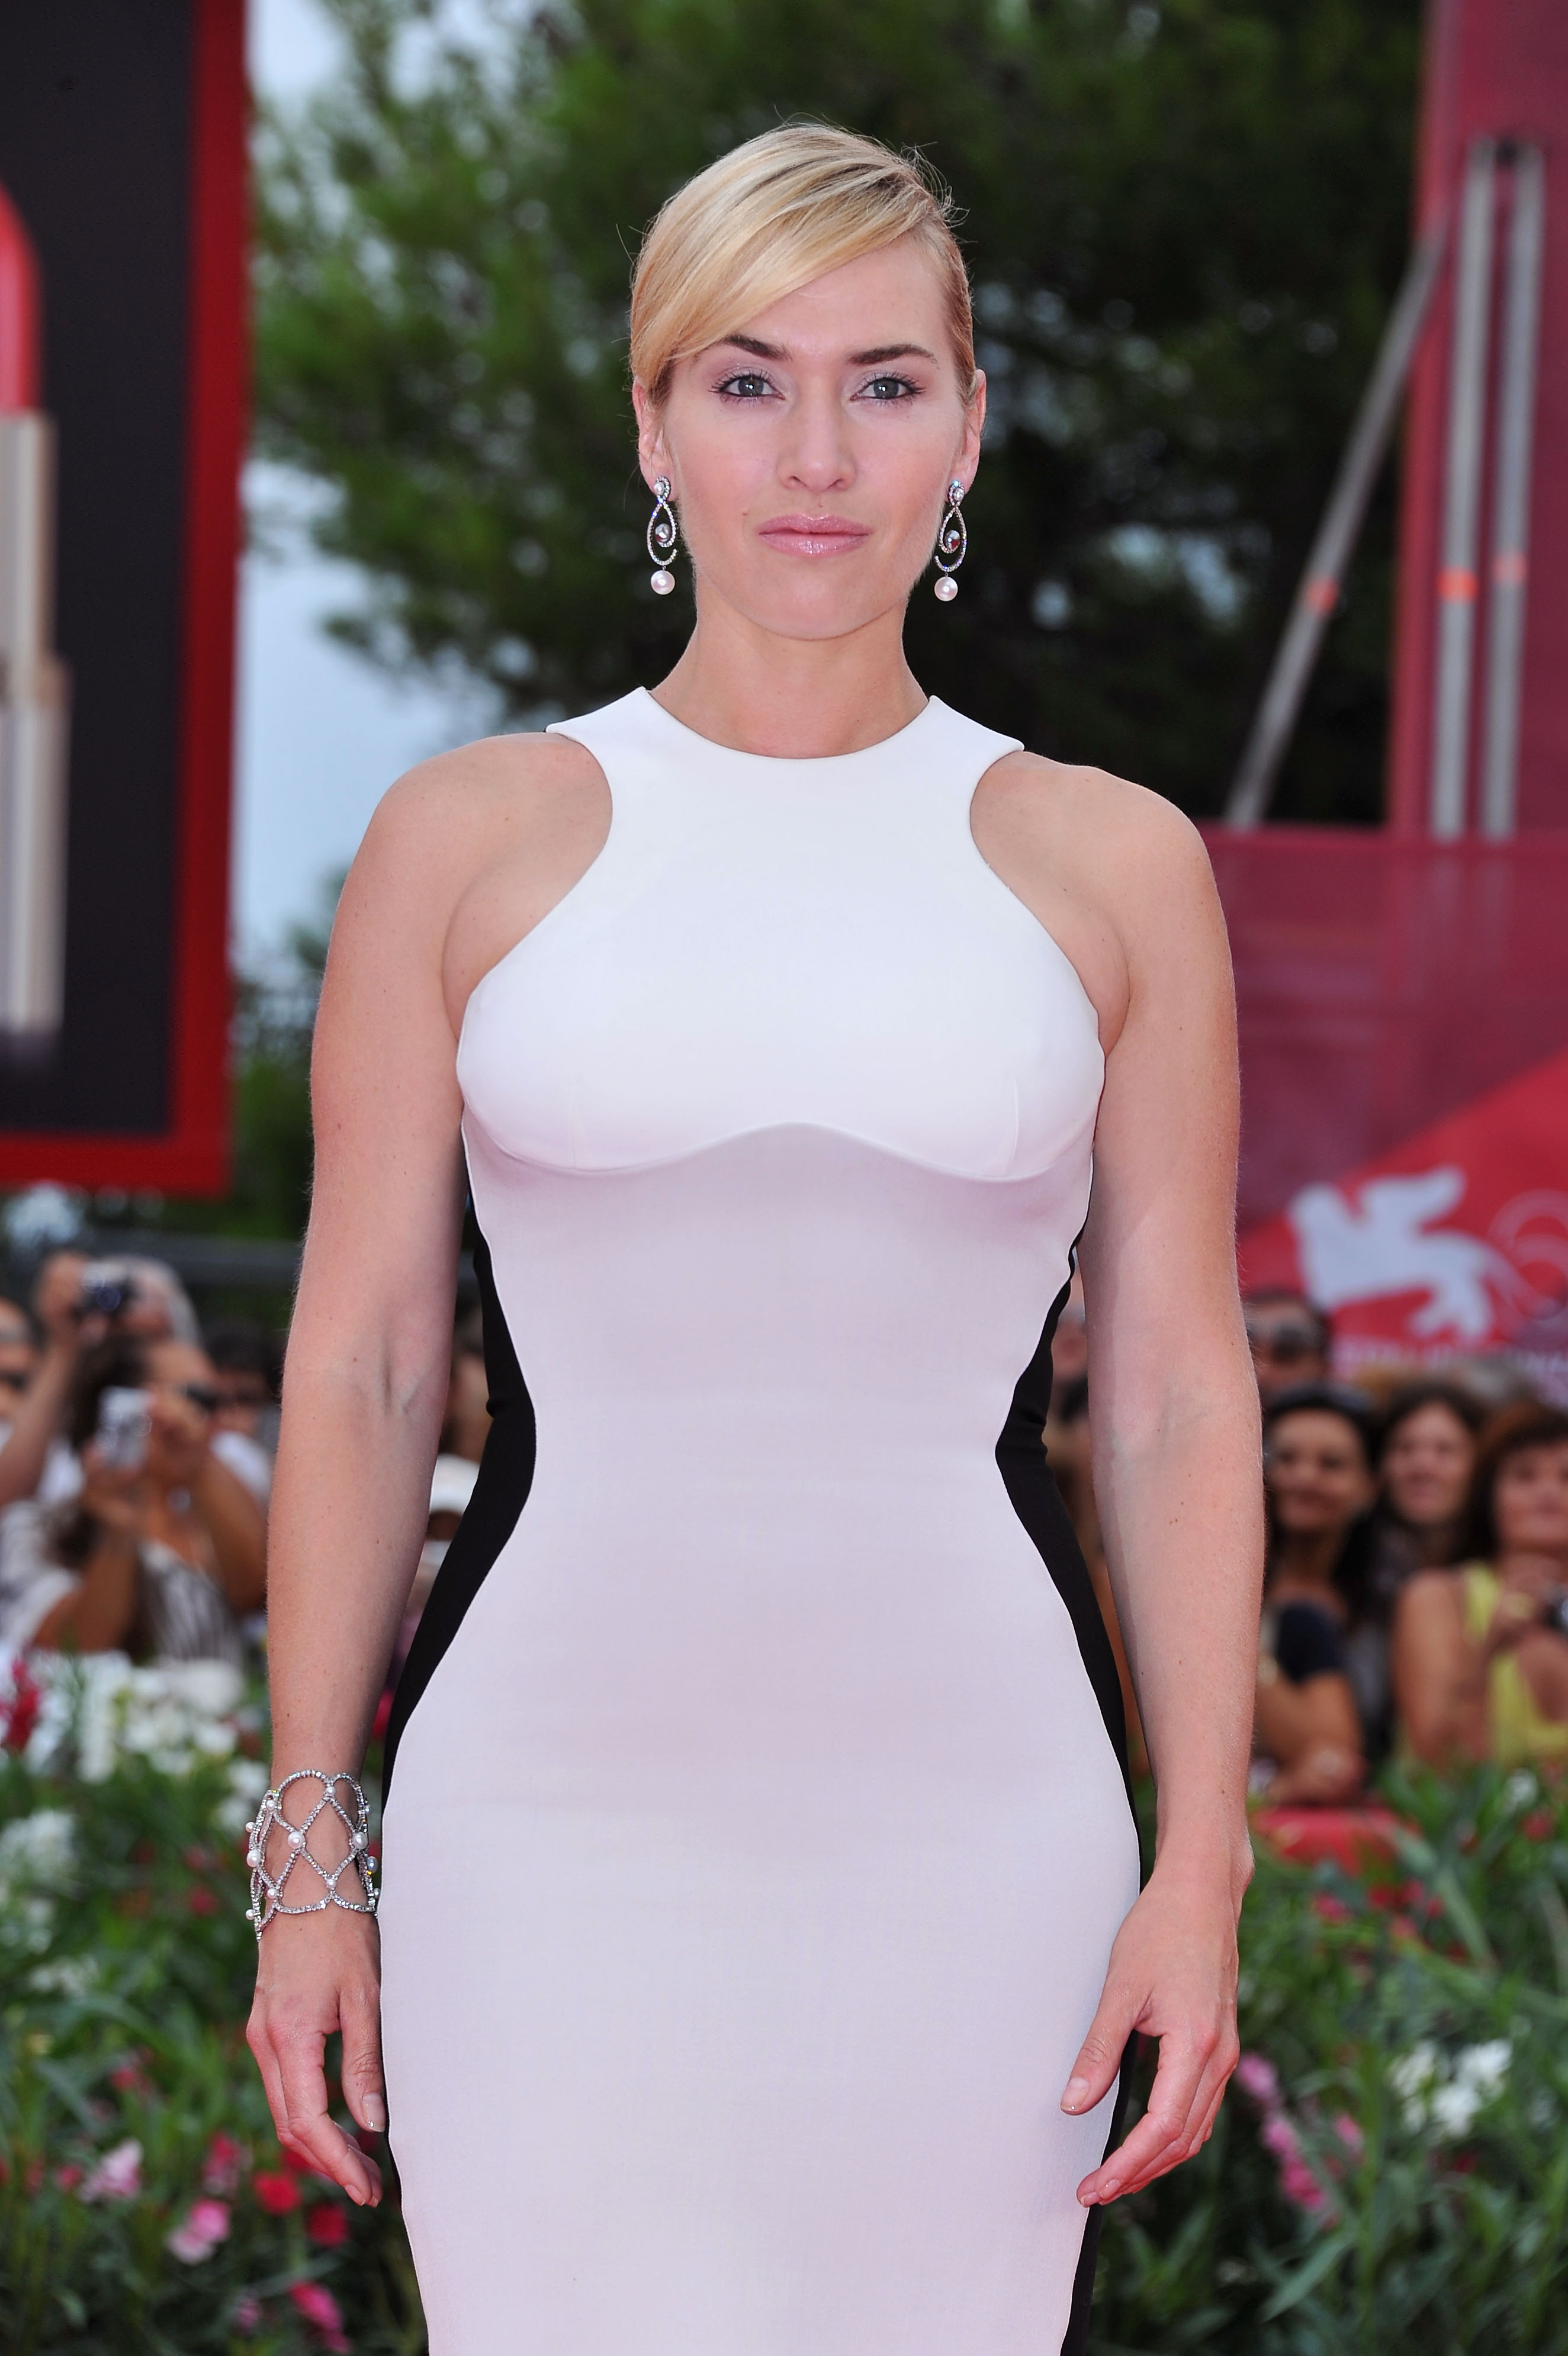 How to fake a hot body | An optical illusion dress with black side panels makes you look thinner | Kate Winslet wearing the Stella McCartney optical illusion dress